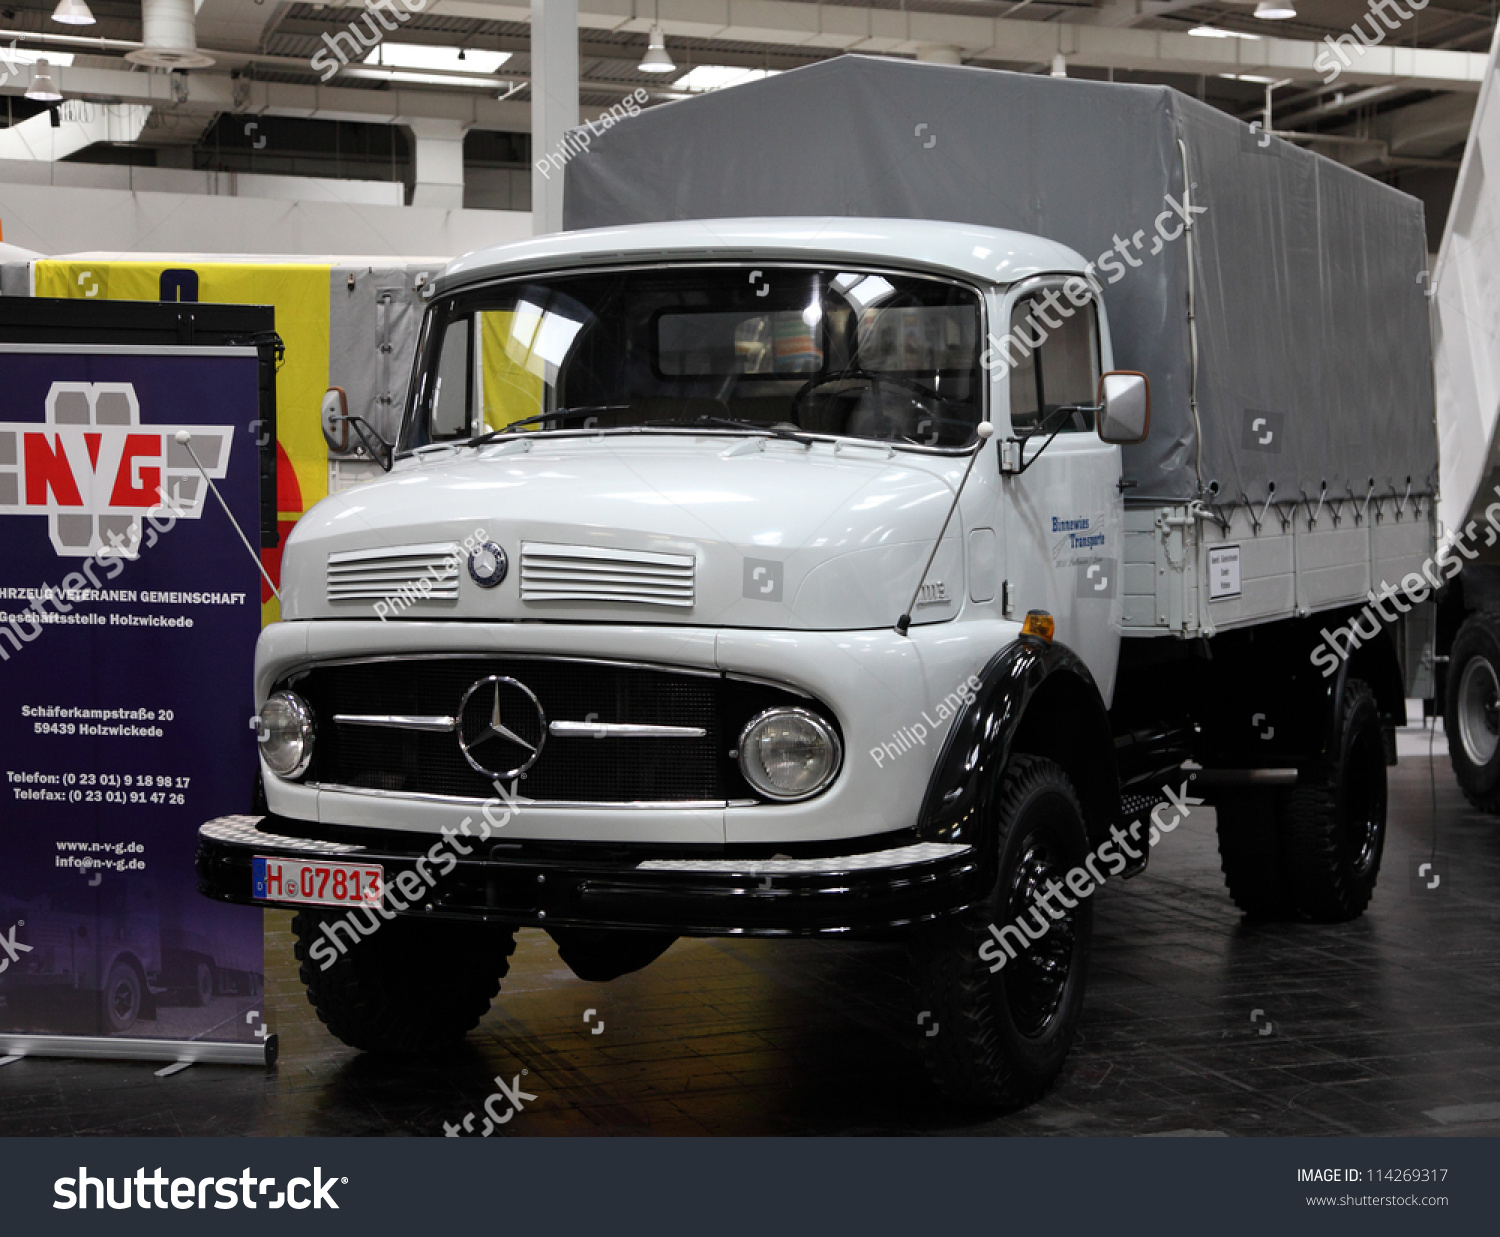 hannover sep 20 mercedes benz 1113 truck from 1965 at the international motor show for. Black Bedroom Furniture Sets. Home Design Ideas